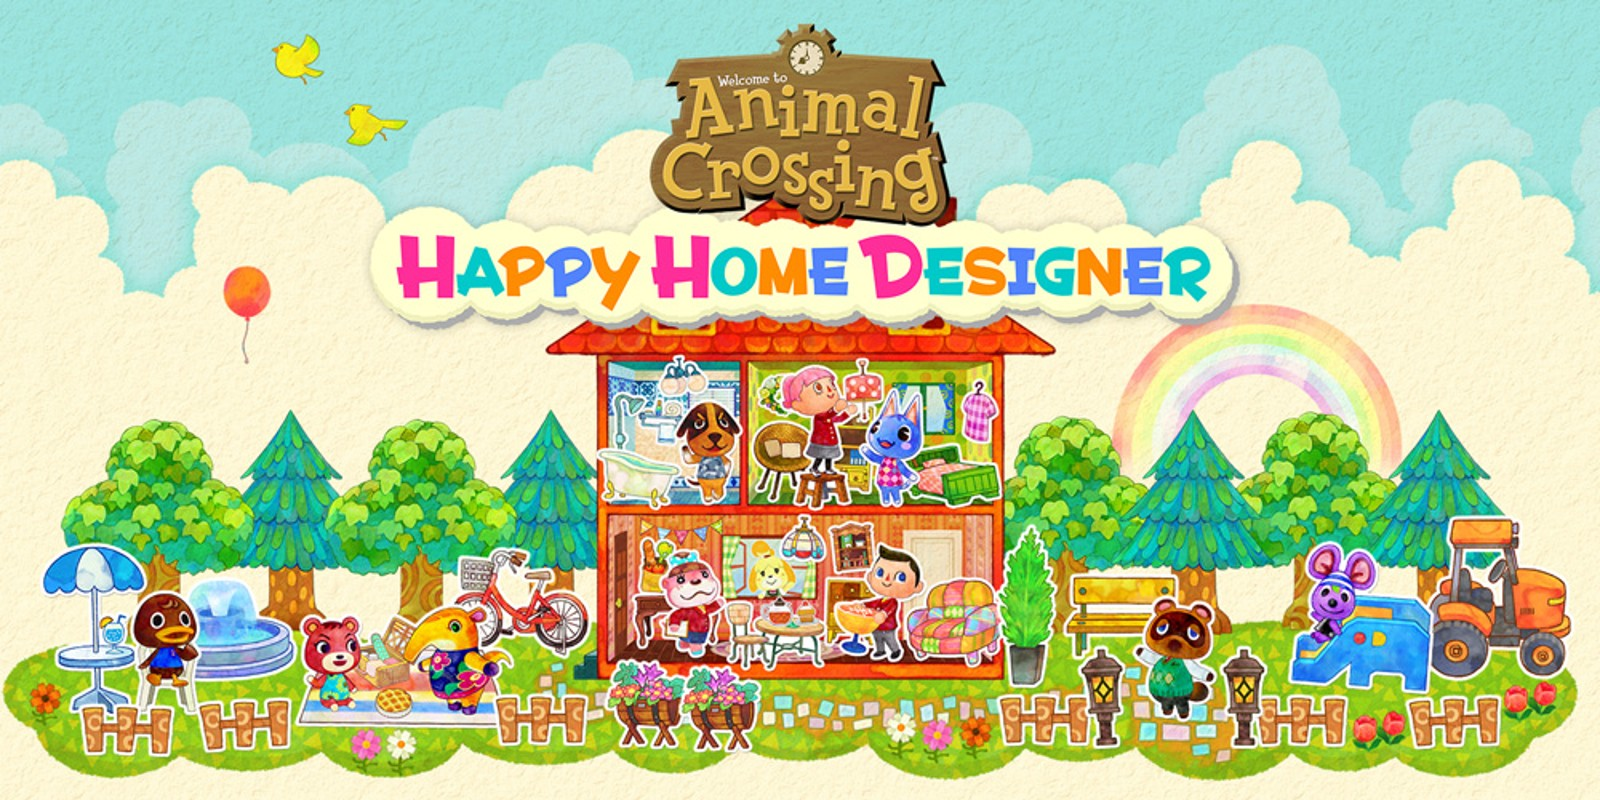 Animal Crossing: Happy Home Designer  Nintendo 3DS  Games  Nintendo